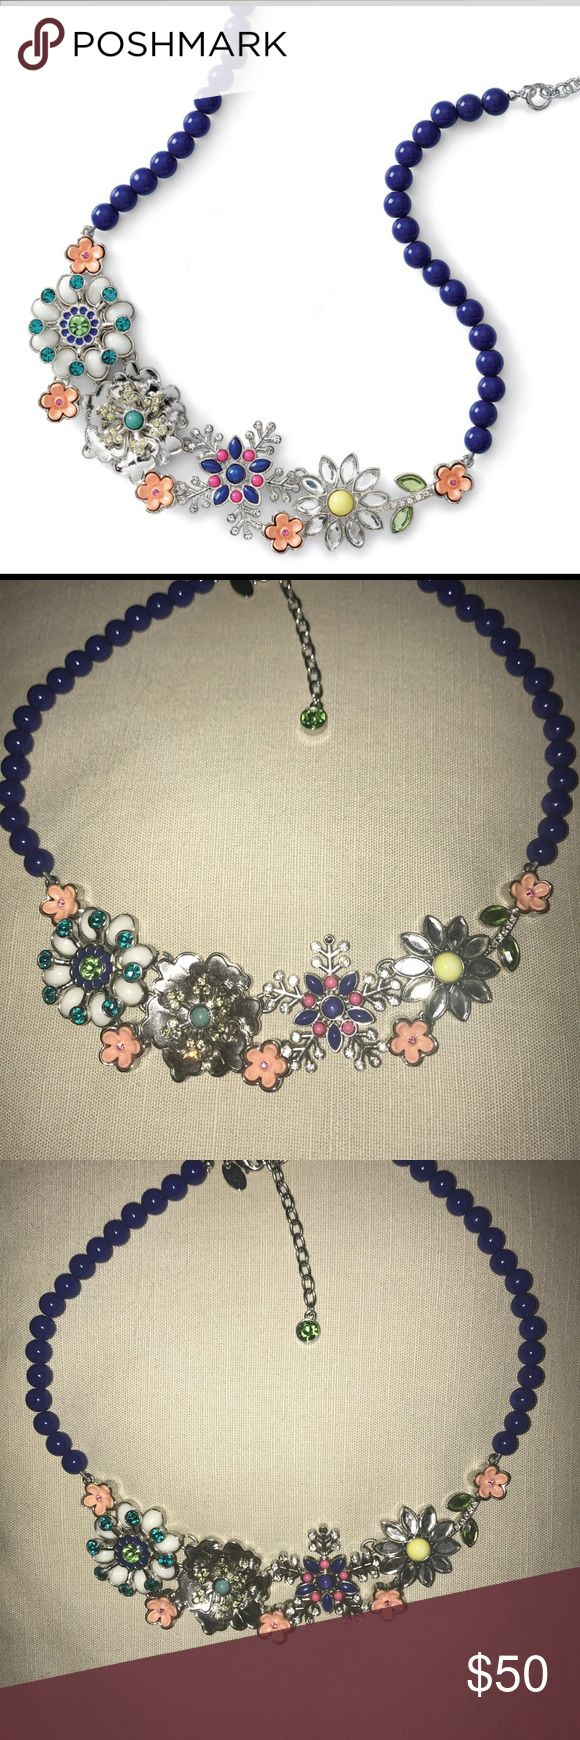 Full Bloom by Lia Sophia Full Bloom necklace by Lia Sophia. Necklace features blue beads and detailed flower design. It is 16-19 inches long. Former display item in excellent condition. Lia Sophia Jewelry Necklaces